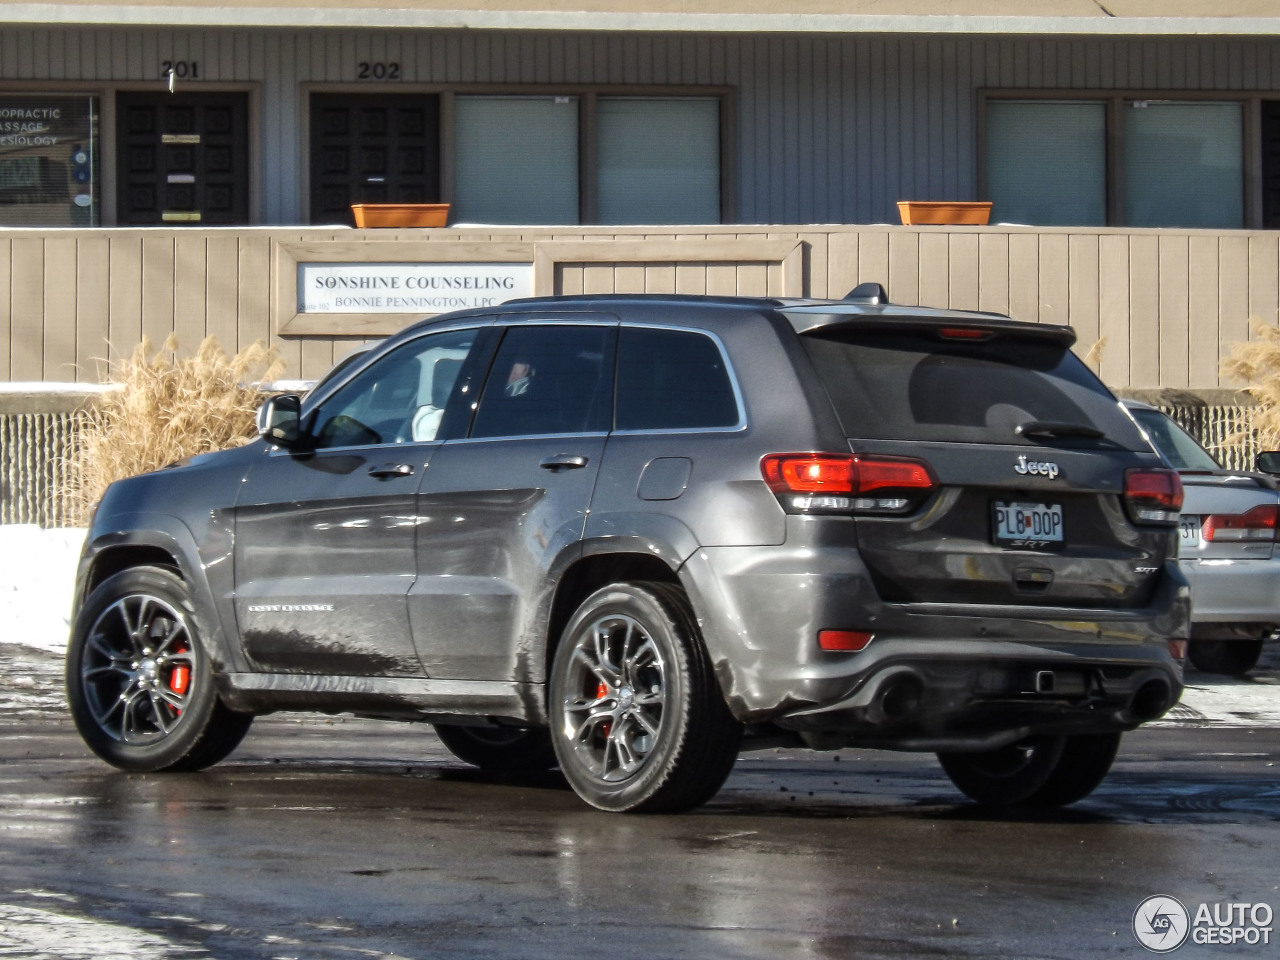 Jeep Cherokee Matte Grey >> Jeep Grand Cherokee SRT-8 2013 - 8 January 2014 - Autogespot